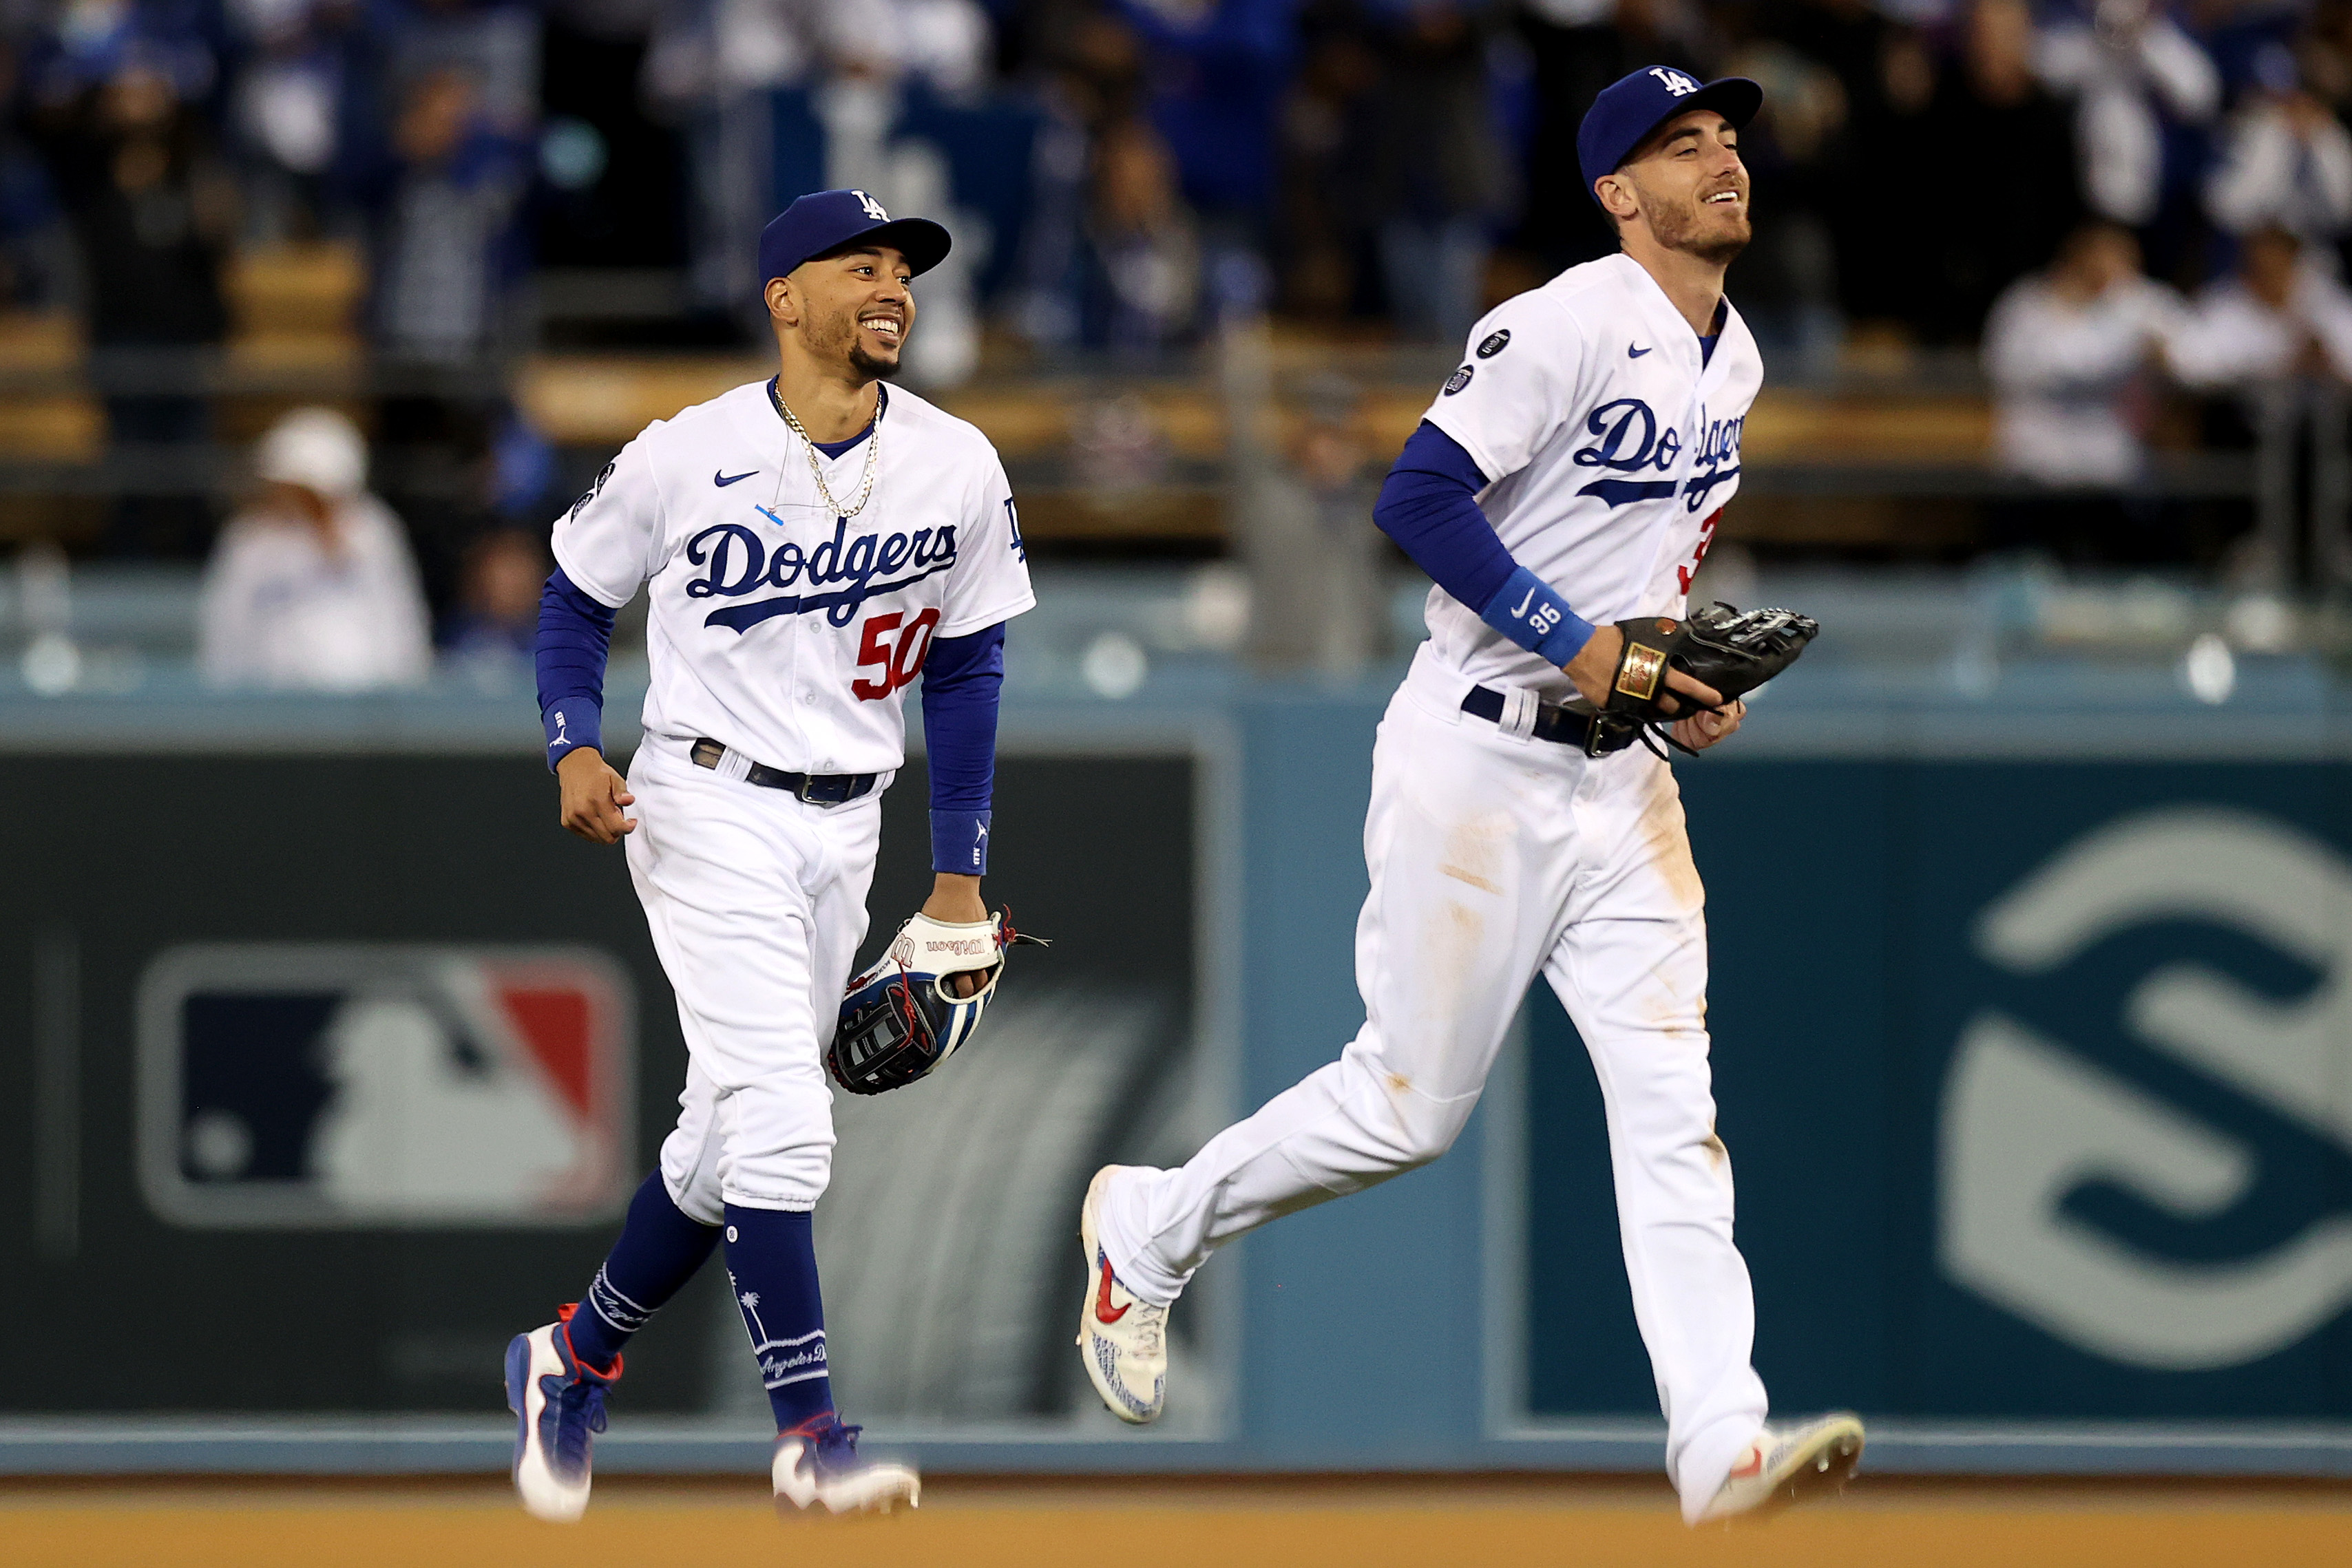 Cody Bellinger #35 and Mookie Betts #50 of the Los Angeles Dodgers react after beating the San Francisco Giants 7-2 in game 4 of the National League Division Series at Dodger Stadium on October 12, 2021 in Los Angeles, California.